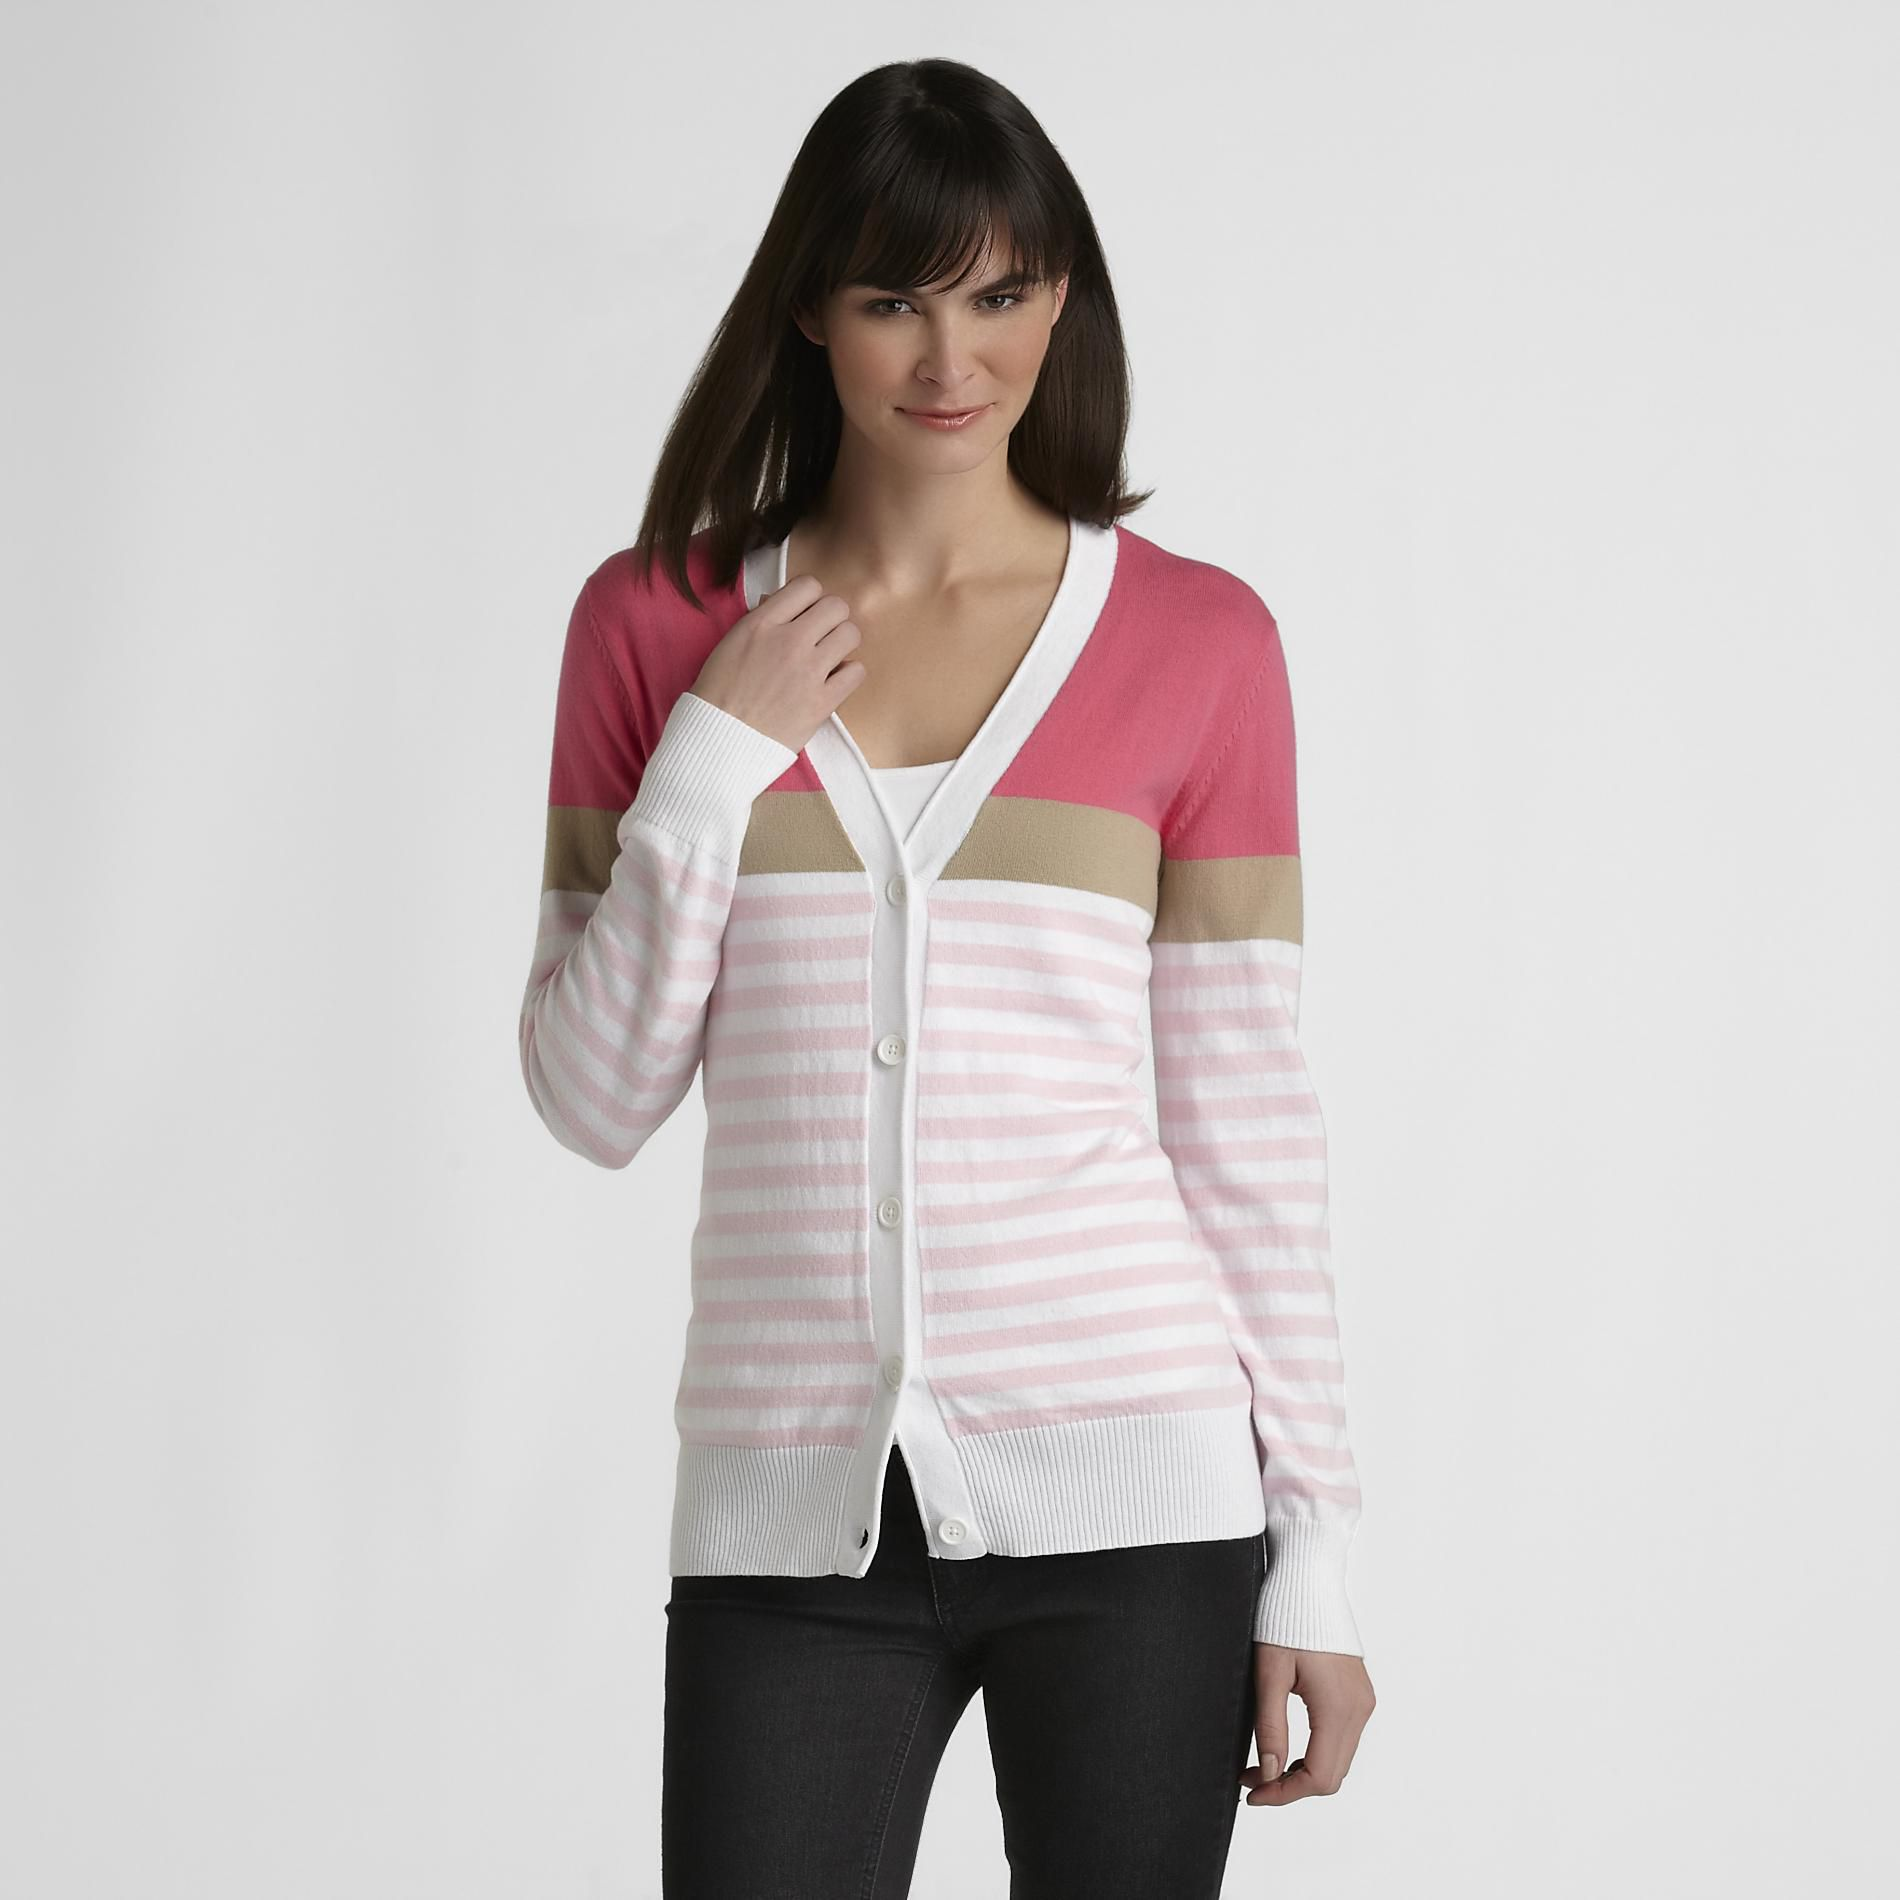 Basic Editions Women's Knit Cardigan - Stripe at Kmart.com